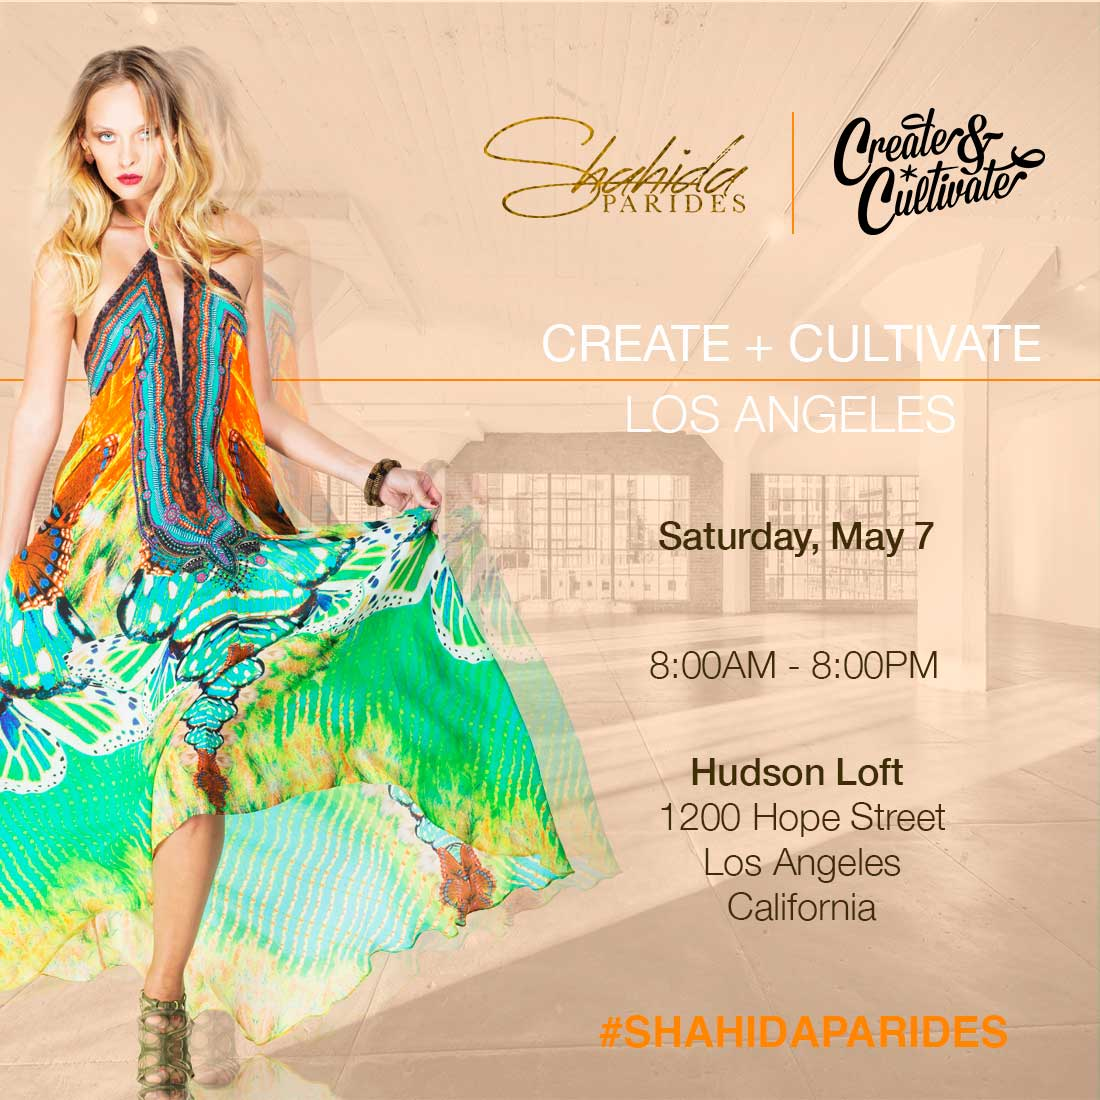 Shahida Parides at Creative & Cultivate 2016